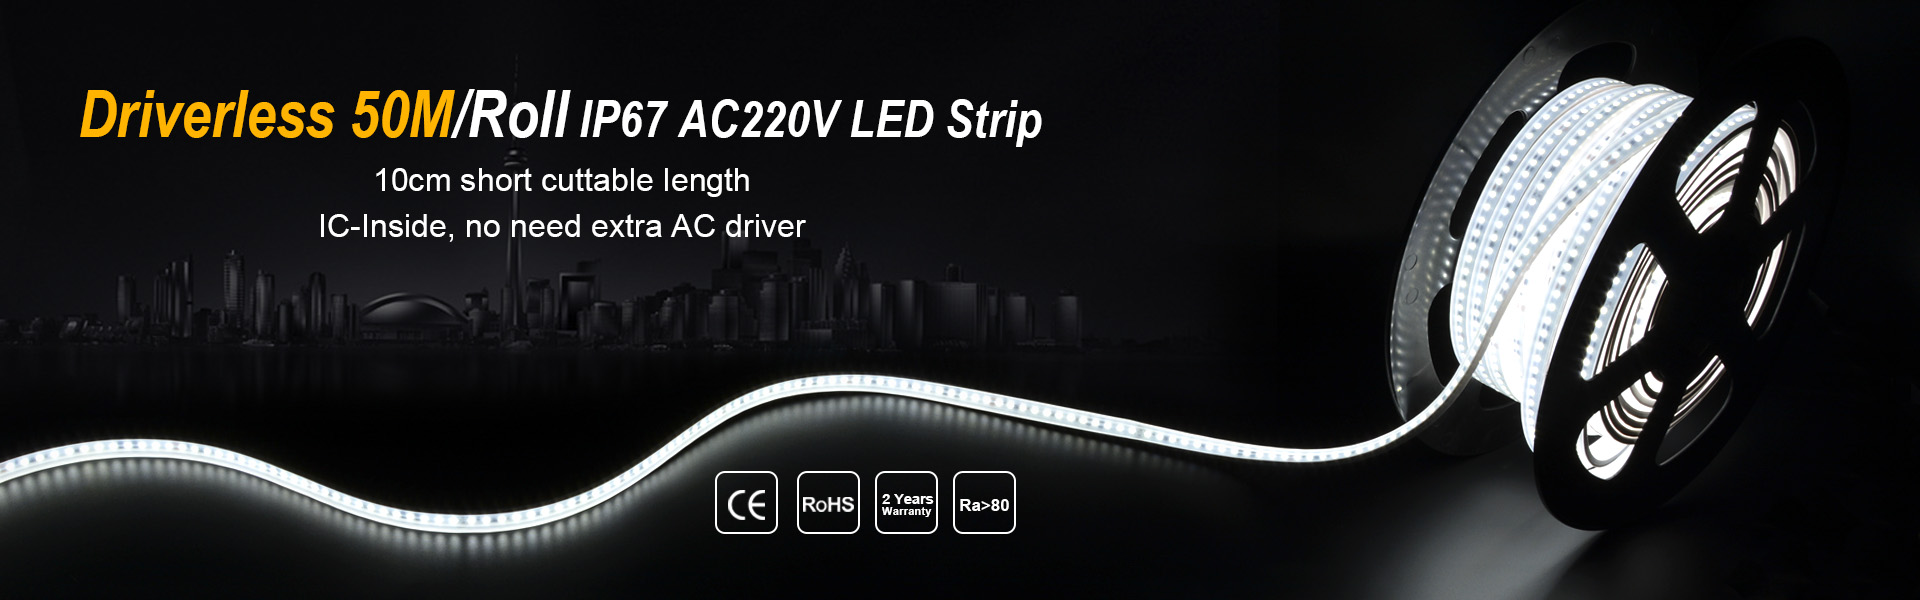 Driverless 50M/Roll IP67 AC220V LED Strip